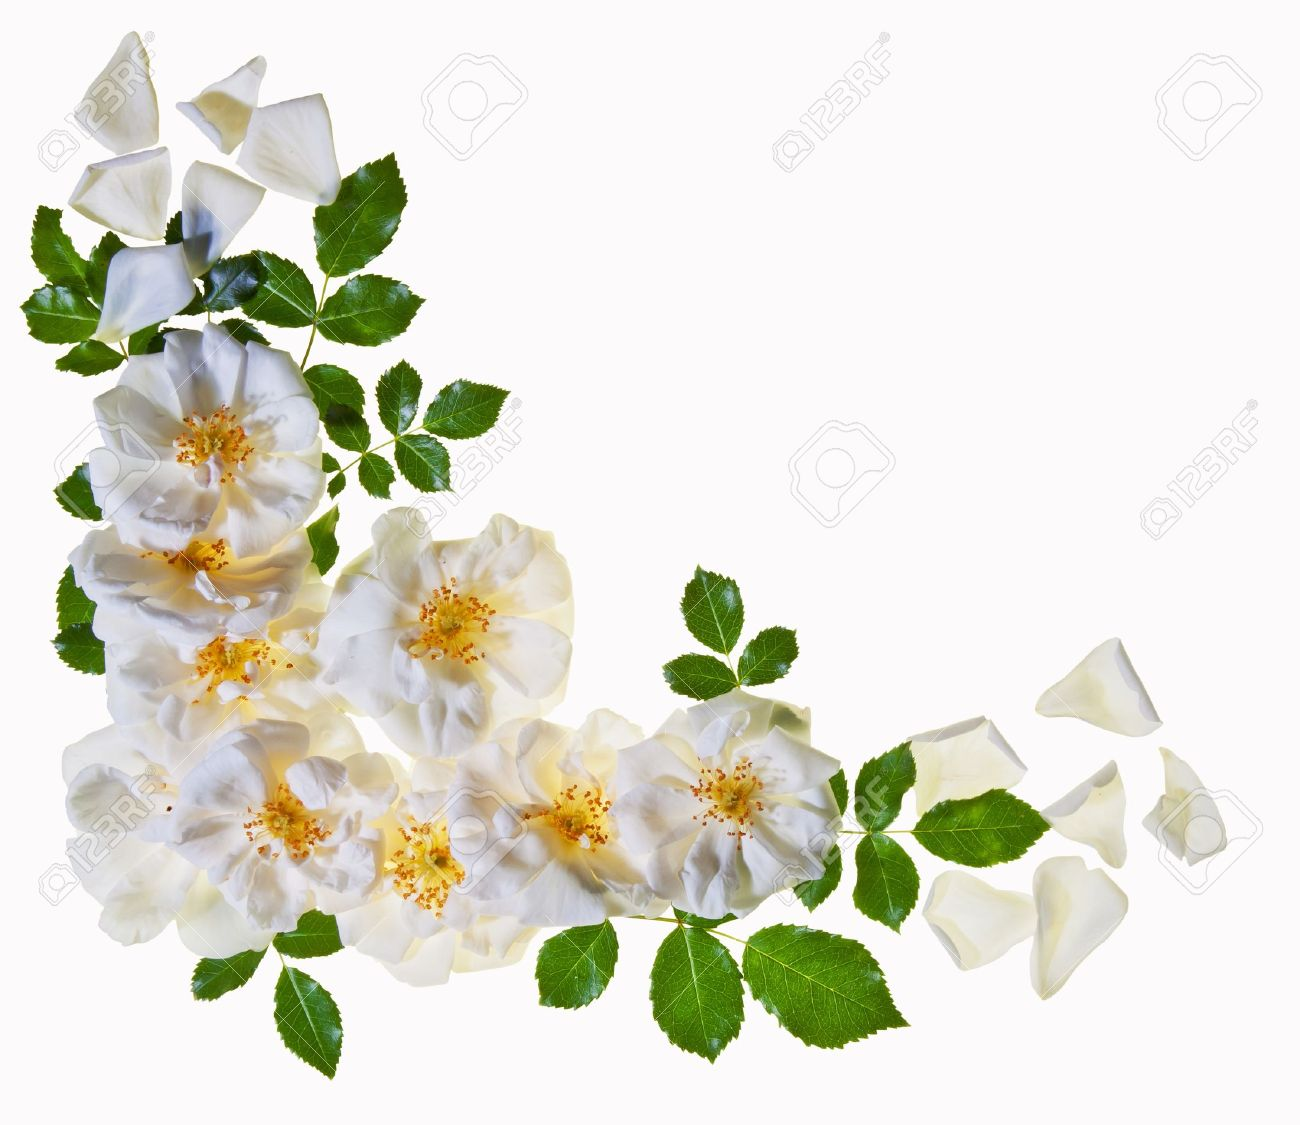 A border of beautful pure white roses isolated against white background - 14041158